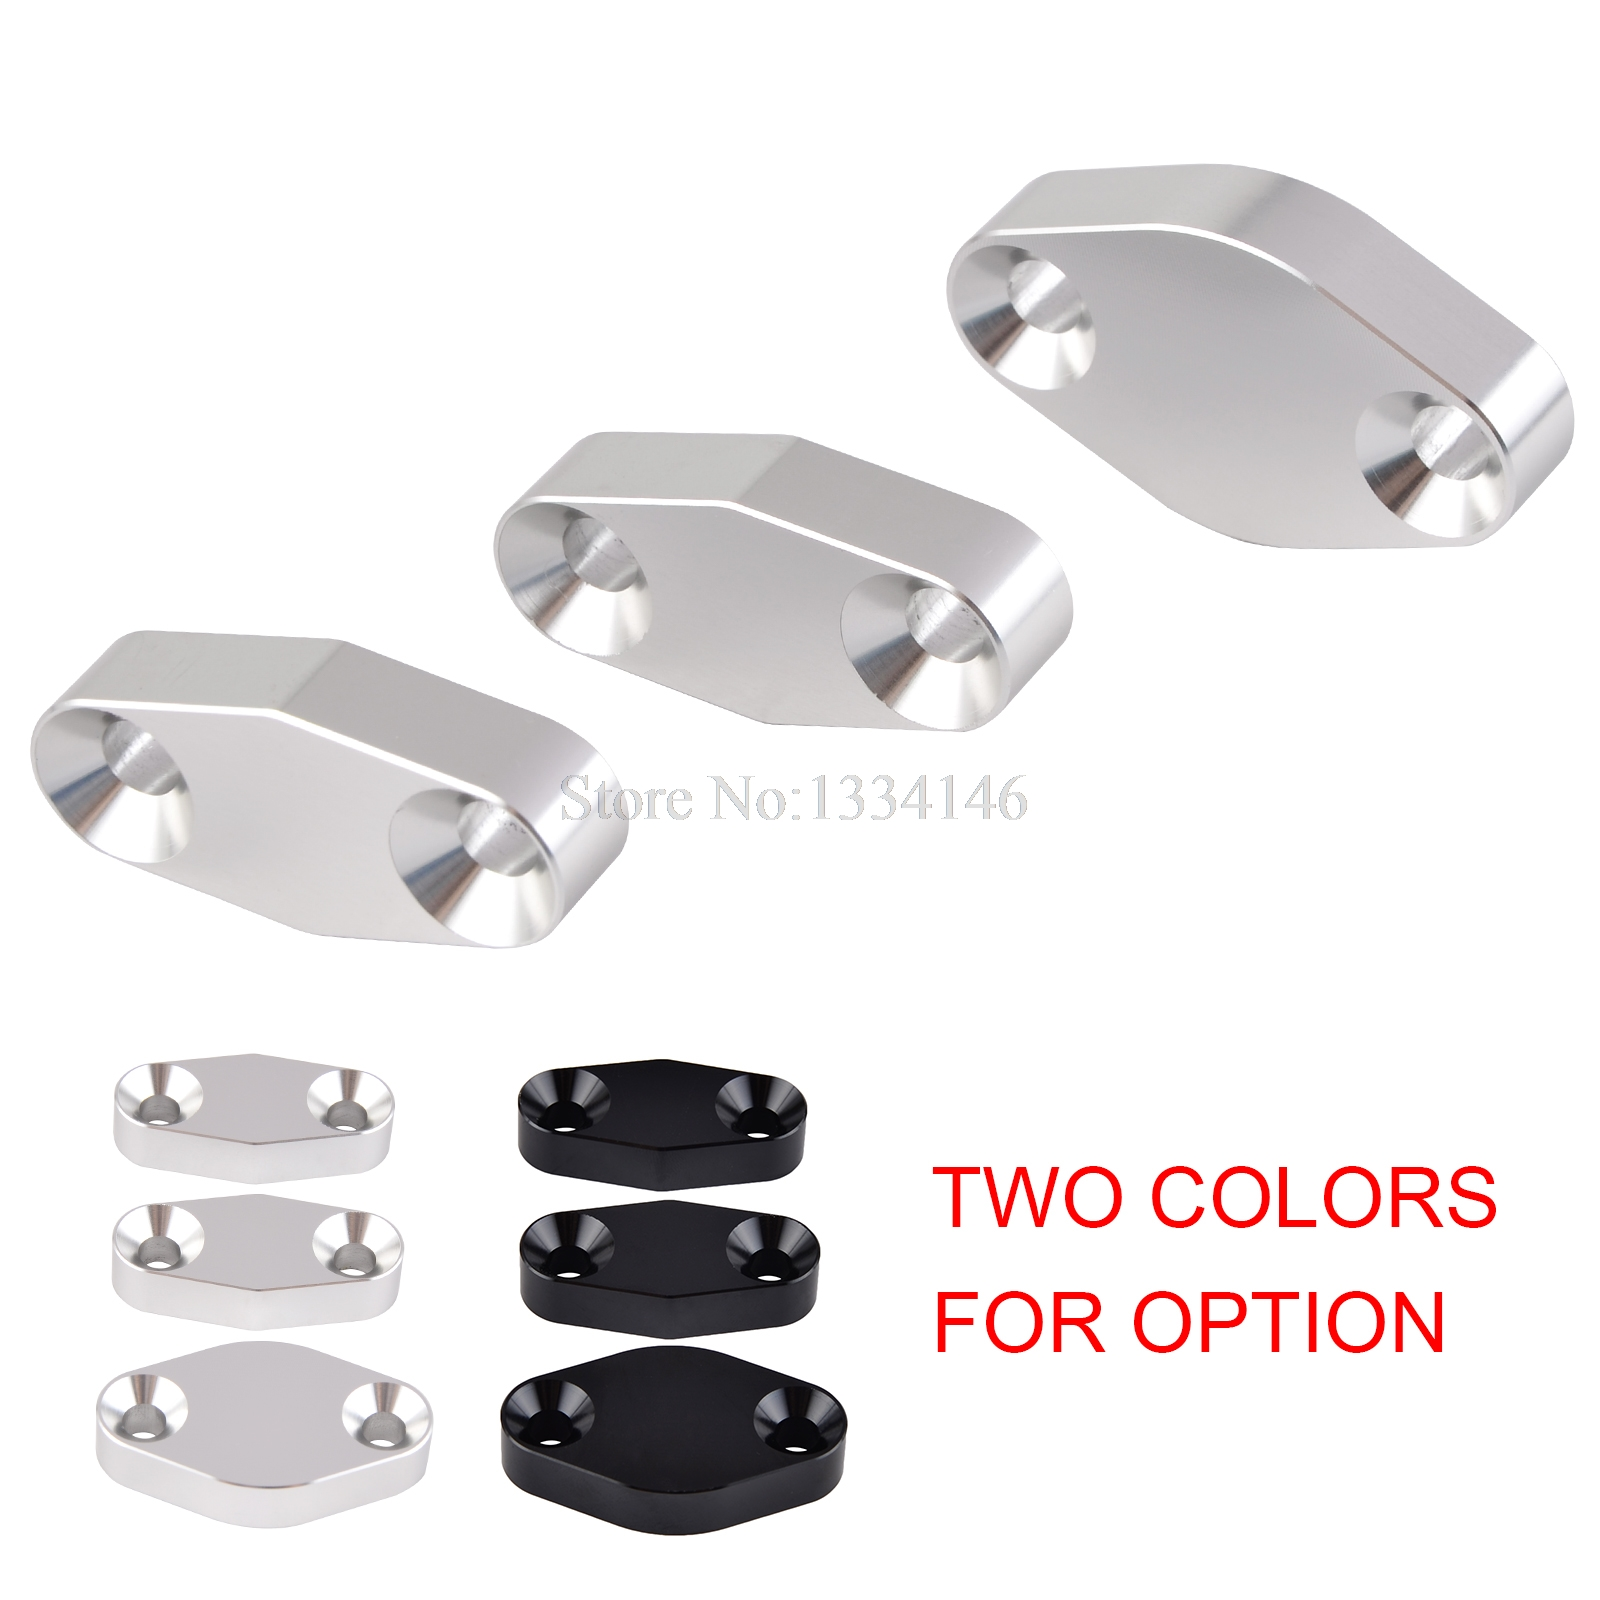 For LSX Camaro LS LS1 LQ4 EGR Valve Blanking Block Plate EGR Smog Air Delete Cover Exhaust Block Off Plate Kit 3Pcs